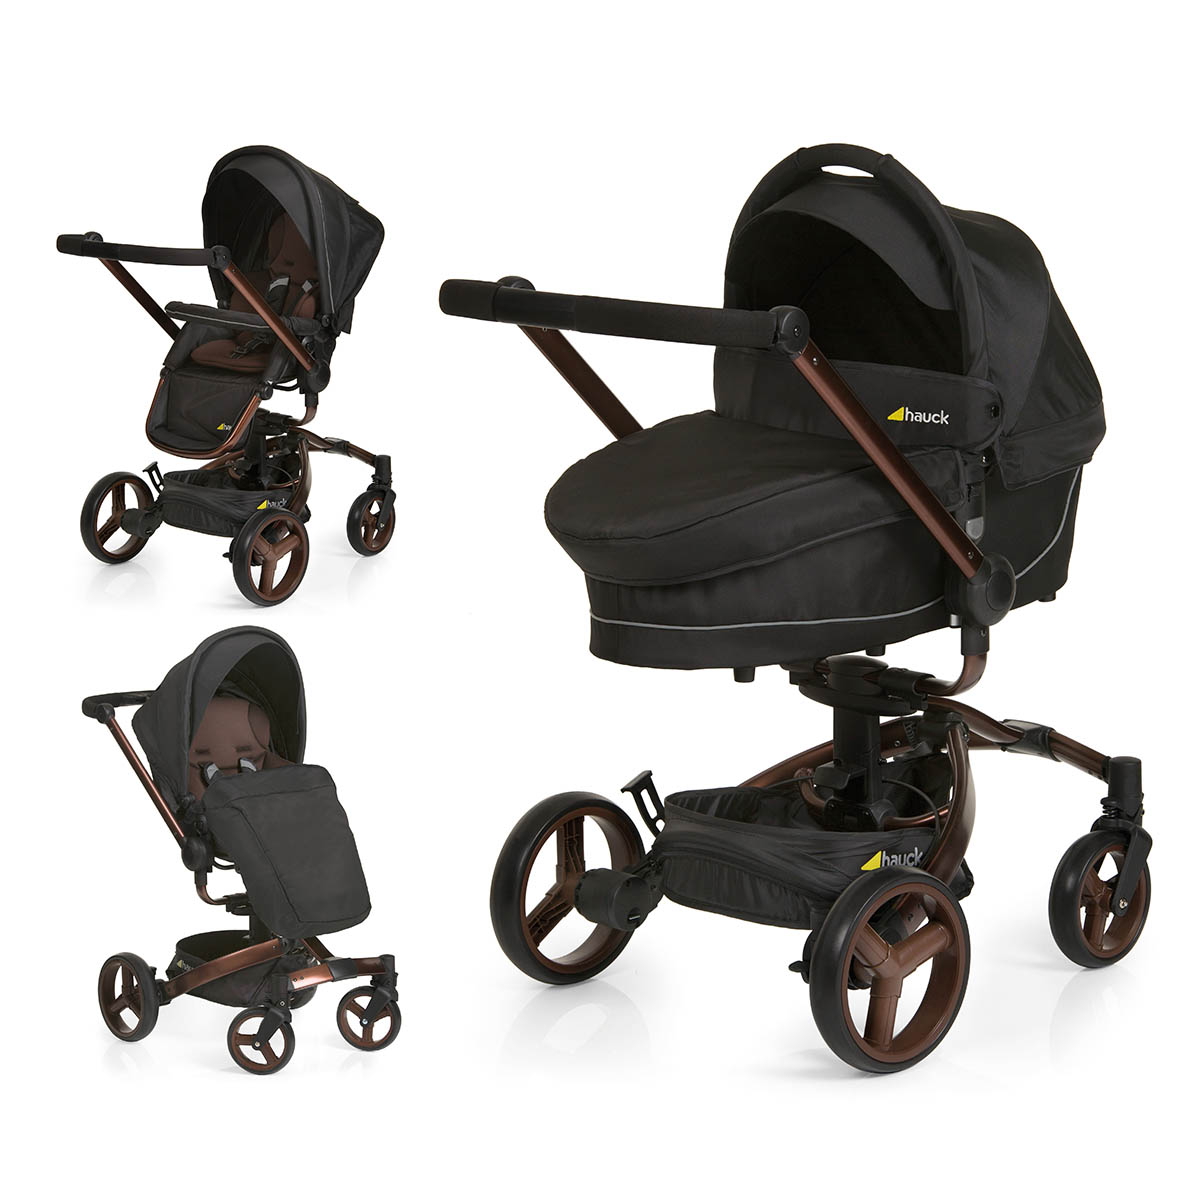 hauck twister duo set buy at kidsroom strollers. Black Bedroom Furniture Sets. Home Design Ideas